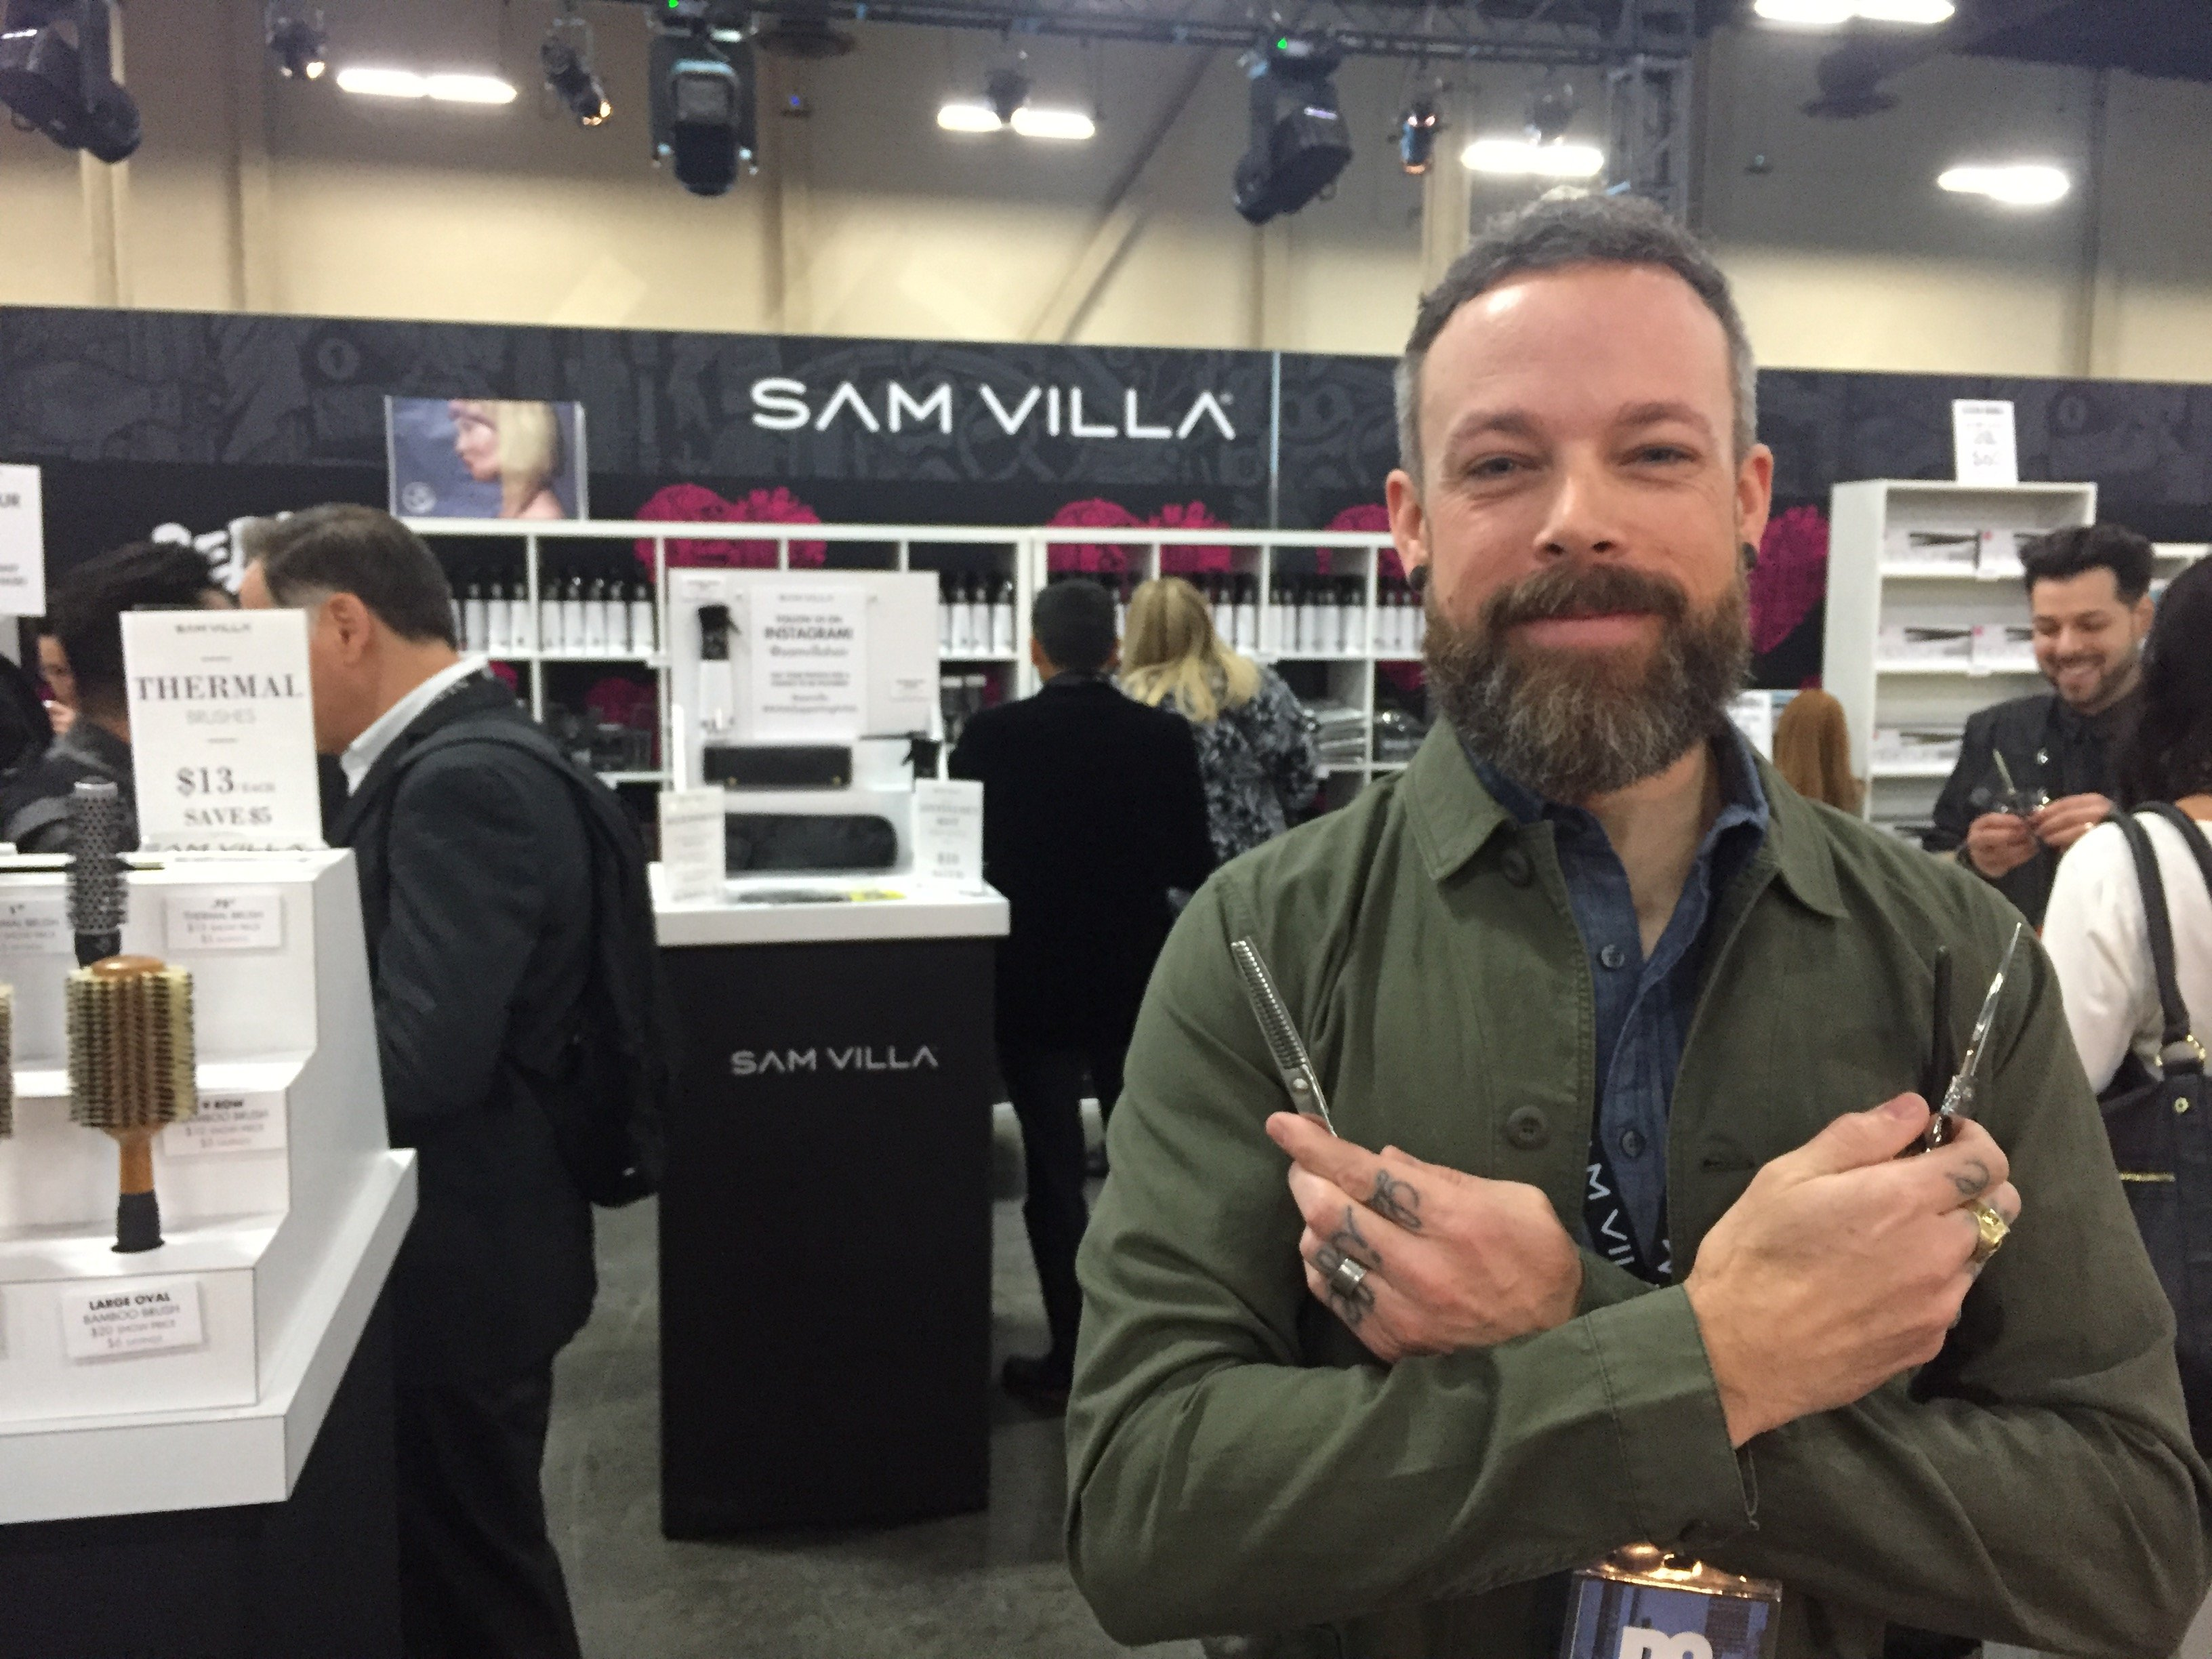 Andrew Carruthers at the Sam Villa booth in the Gallerie at Redken Symposium 2017.